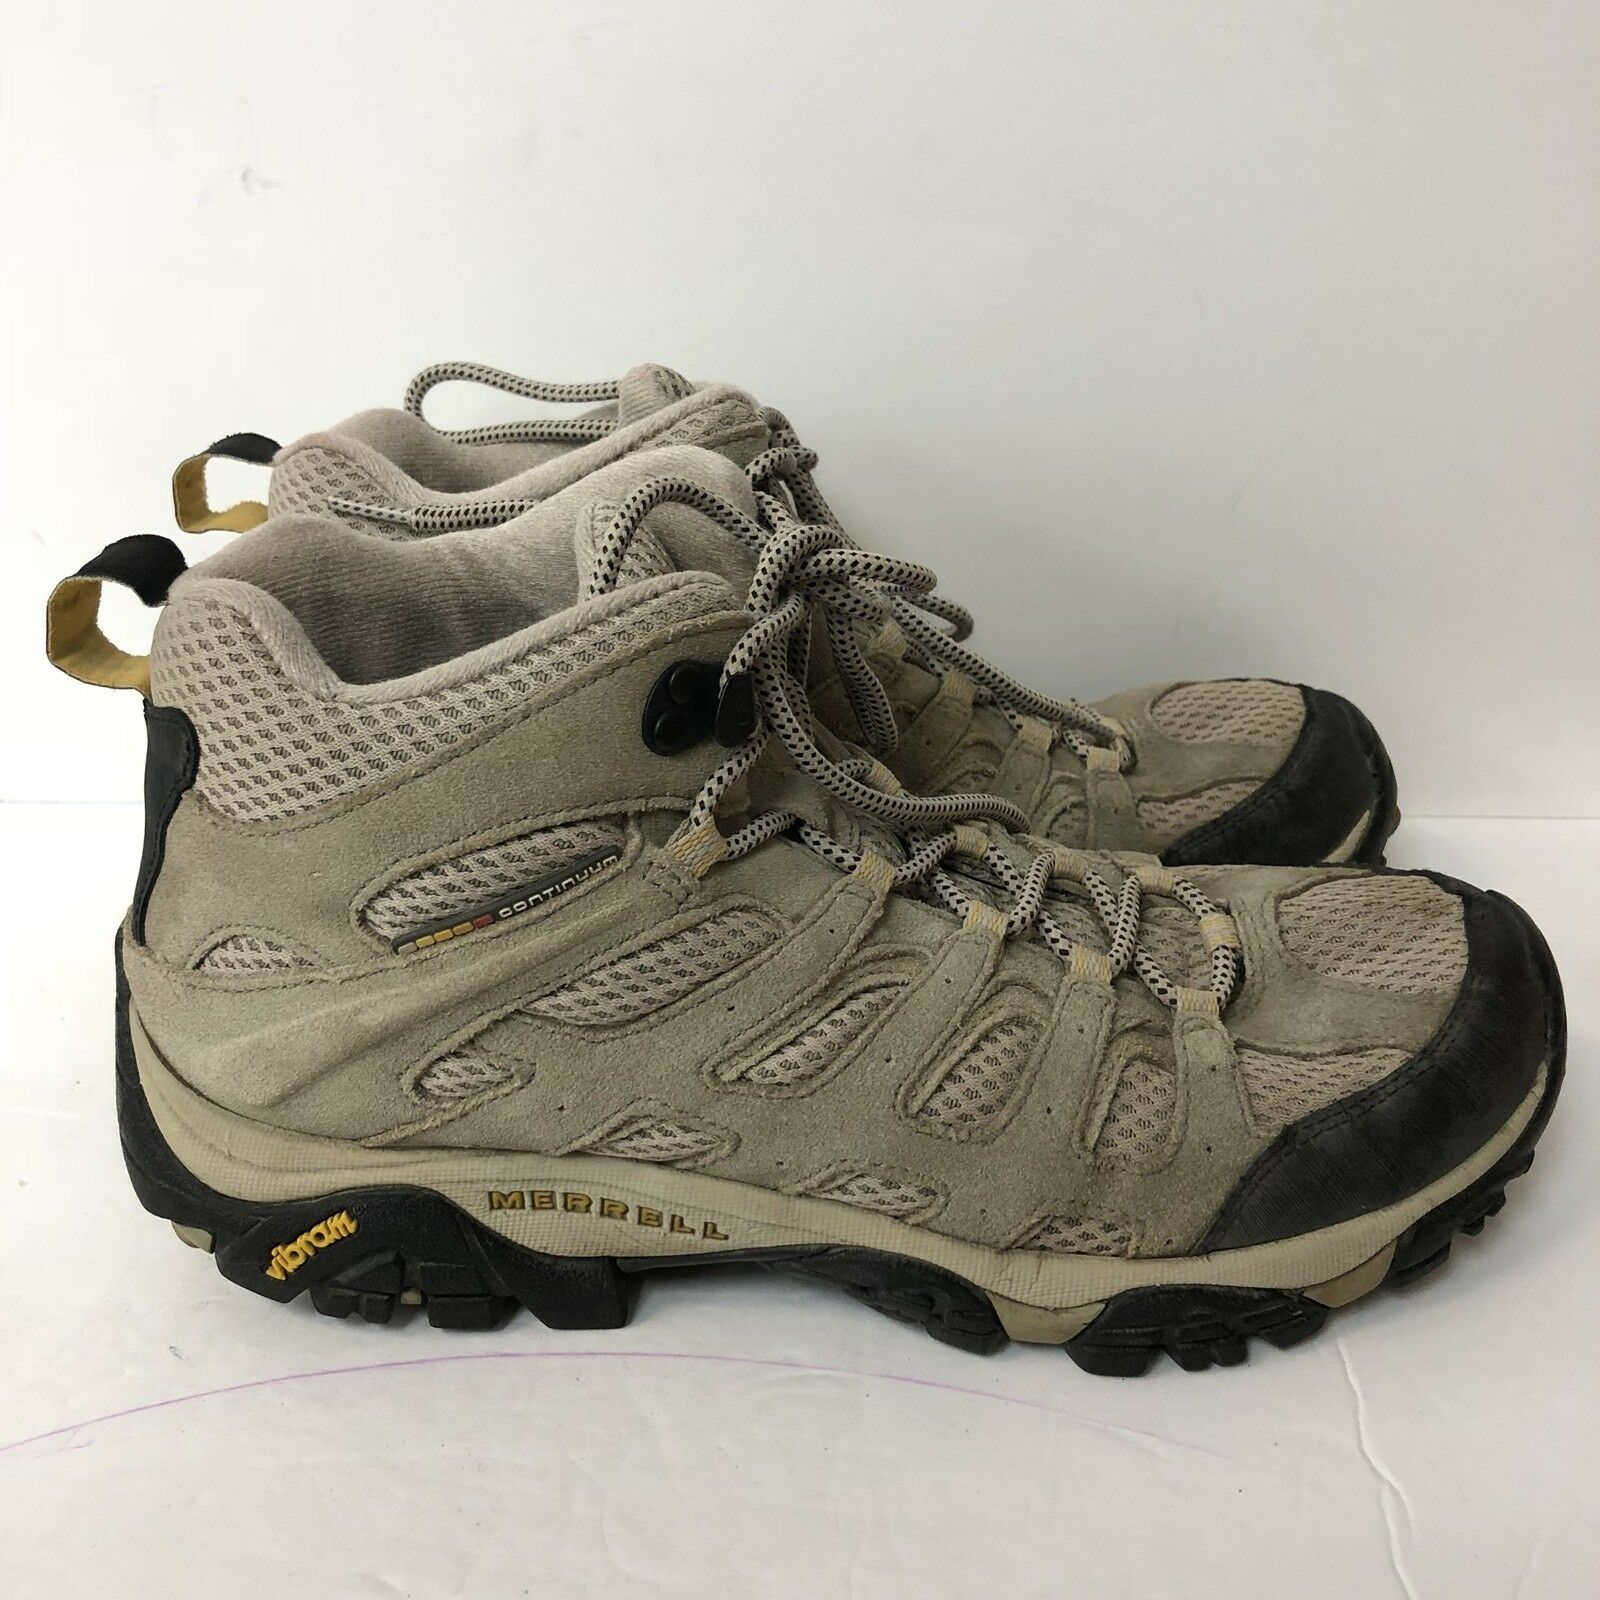 Merrell Hiking Boots Women Size 10 Great Condition